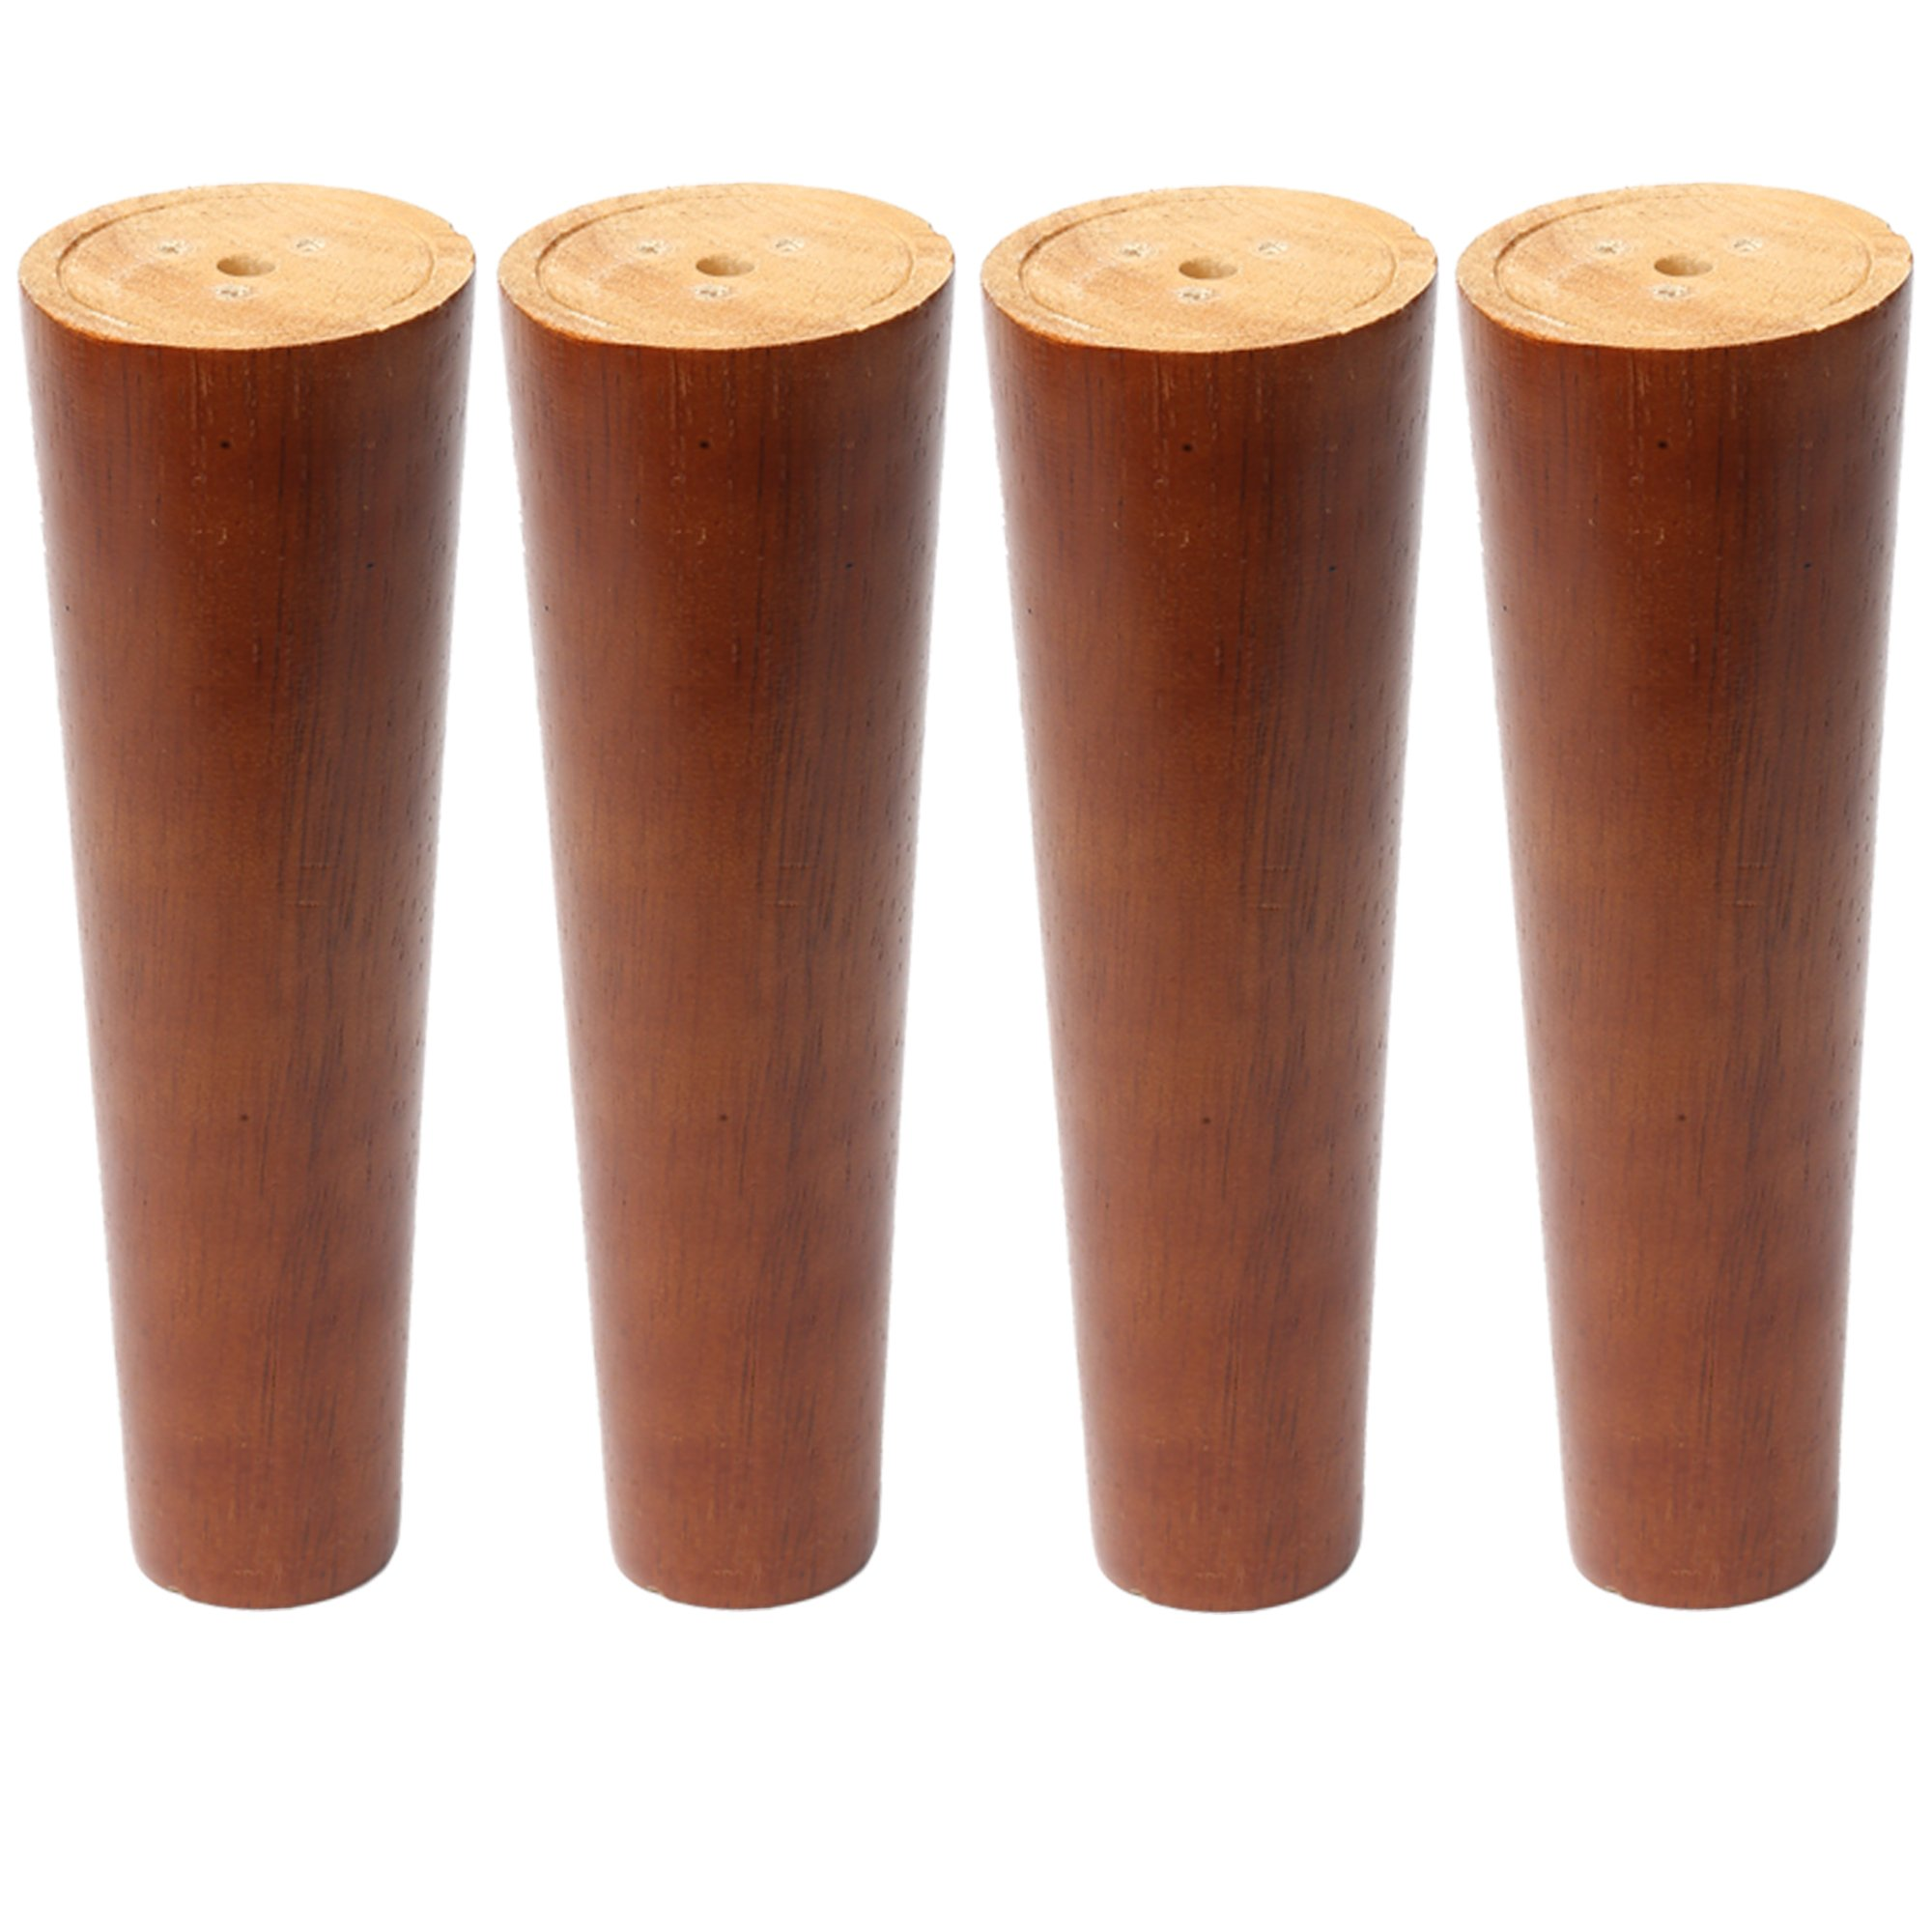 Sweet melodi Round Solid Wood Furniture Sofa/Chair/Couch/Loveseat/Cabinet Replacement Legs With special installation parts,Perfect for IKEA or US made furniture (Walnut color, 12 Inches,4 pcs)